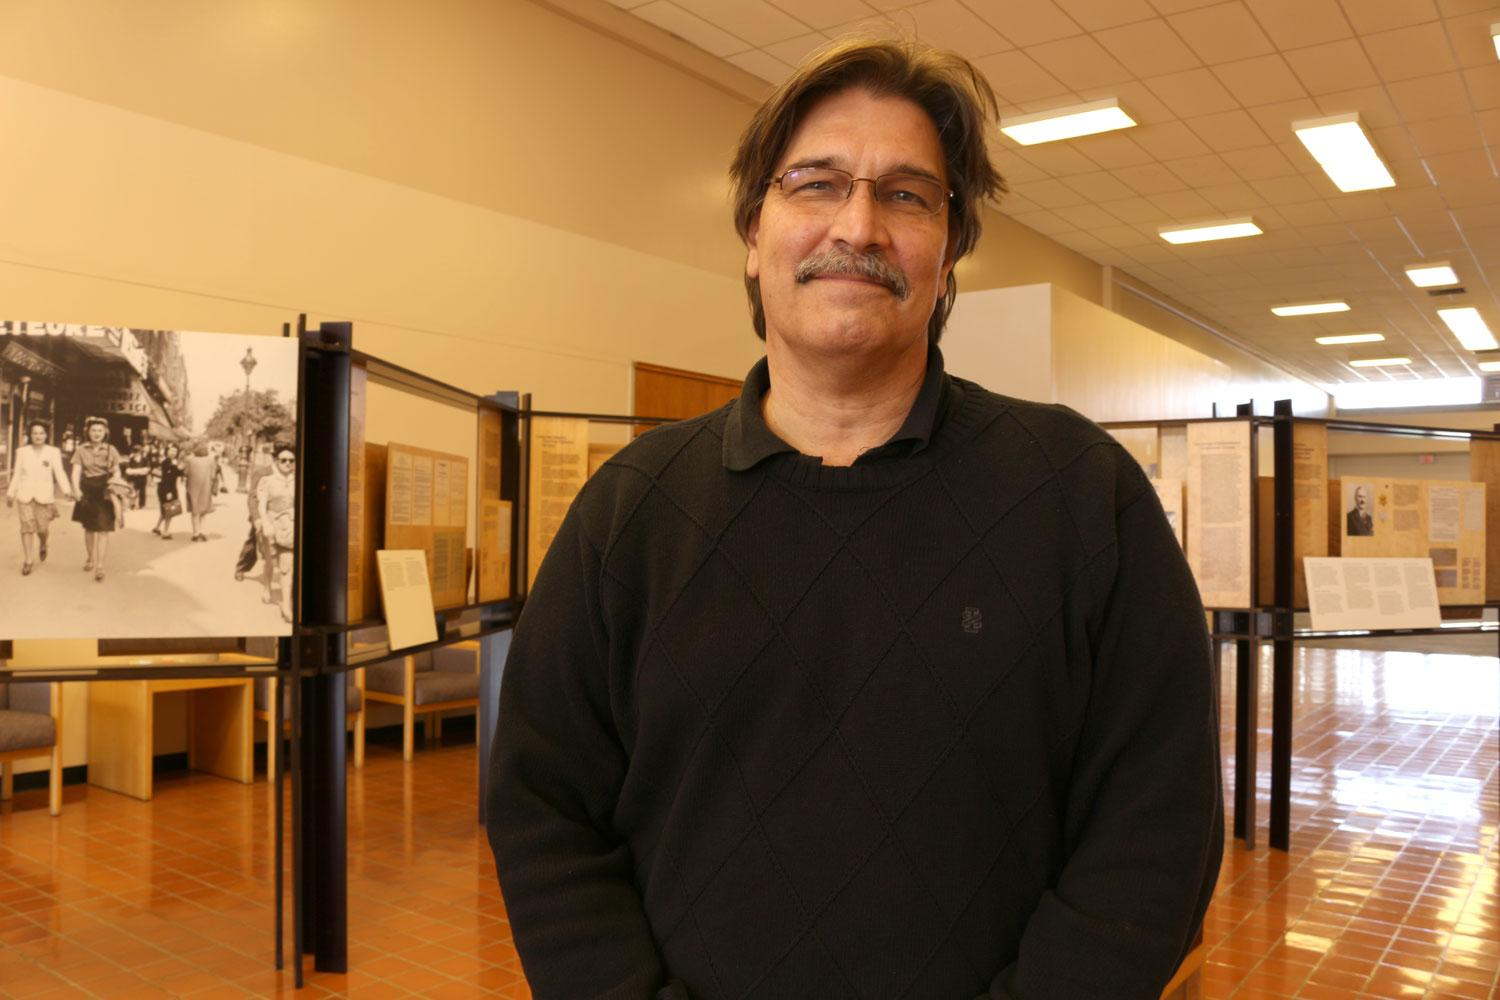 SCC professor John Liffiton stands in front of the Hélène Berr exhibit in the school's Student Center. The exhibit is part of the school's upcoming Genocide Conference for Genocide Awareness Week.